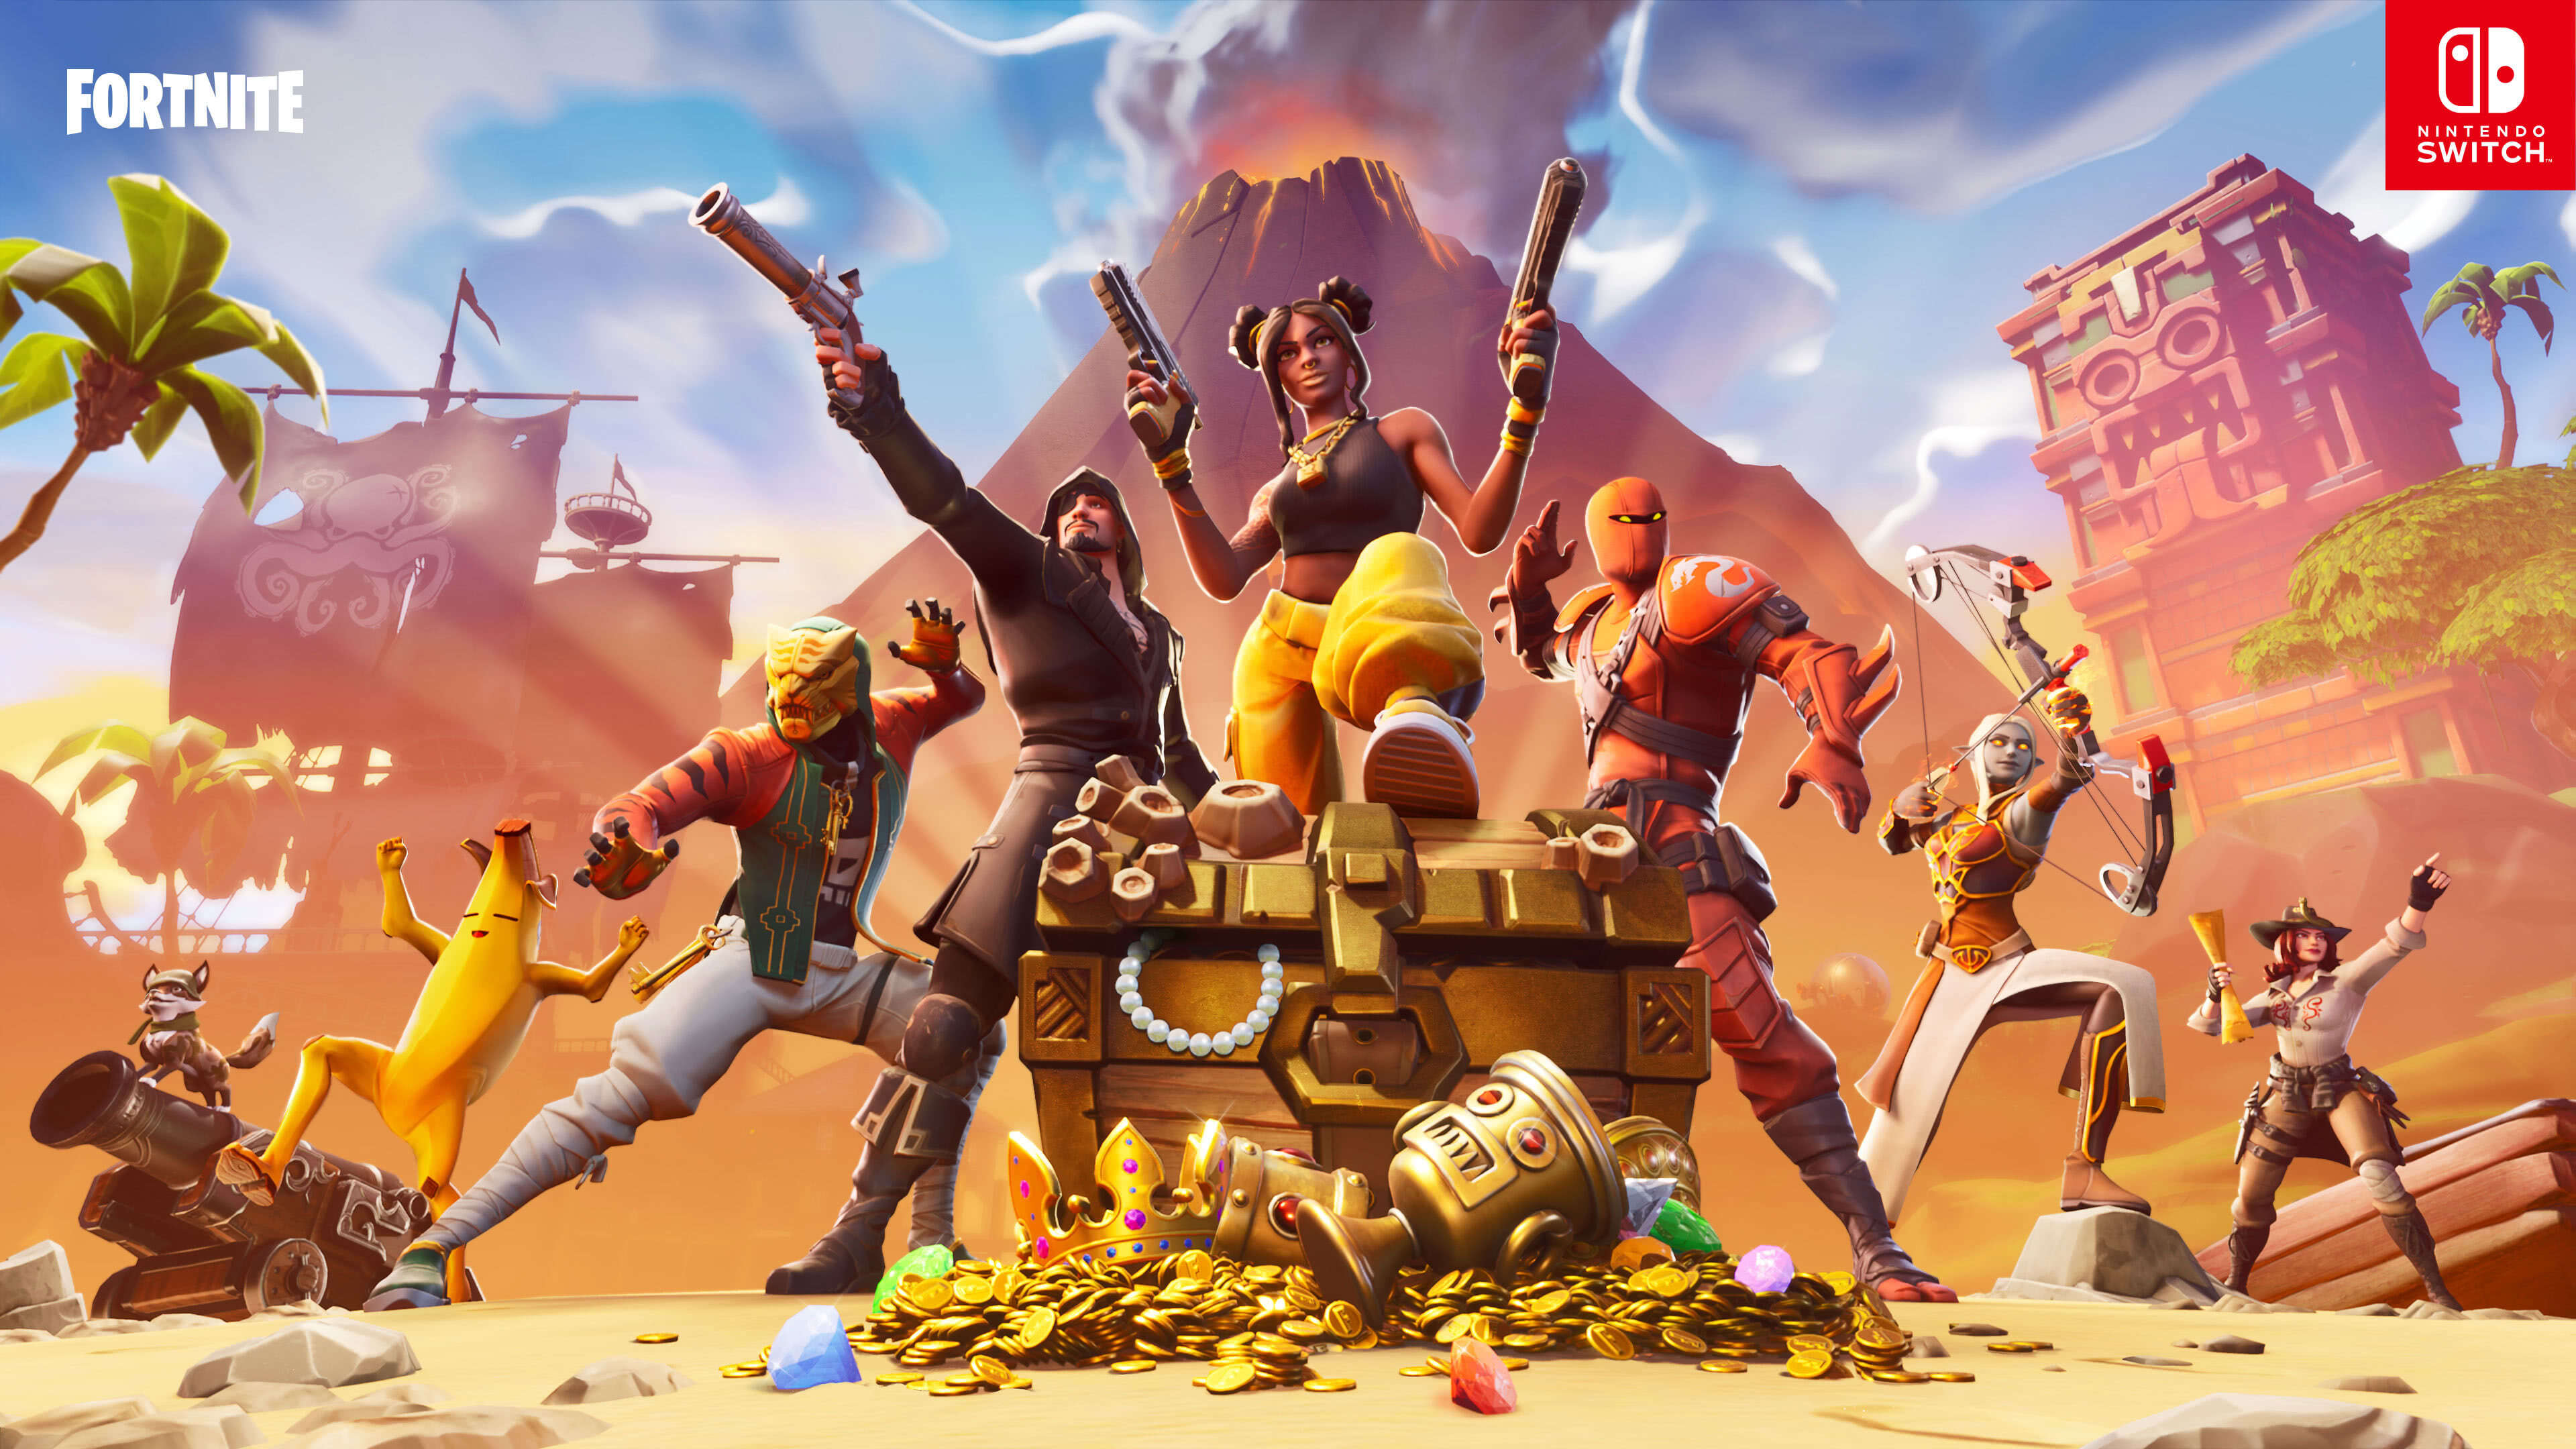 Fortnite In 4k Posted By Sarah Cunningham